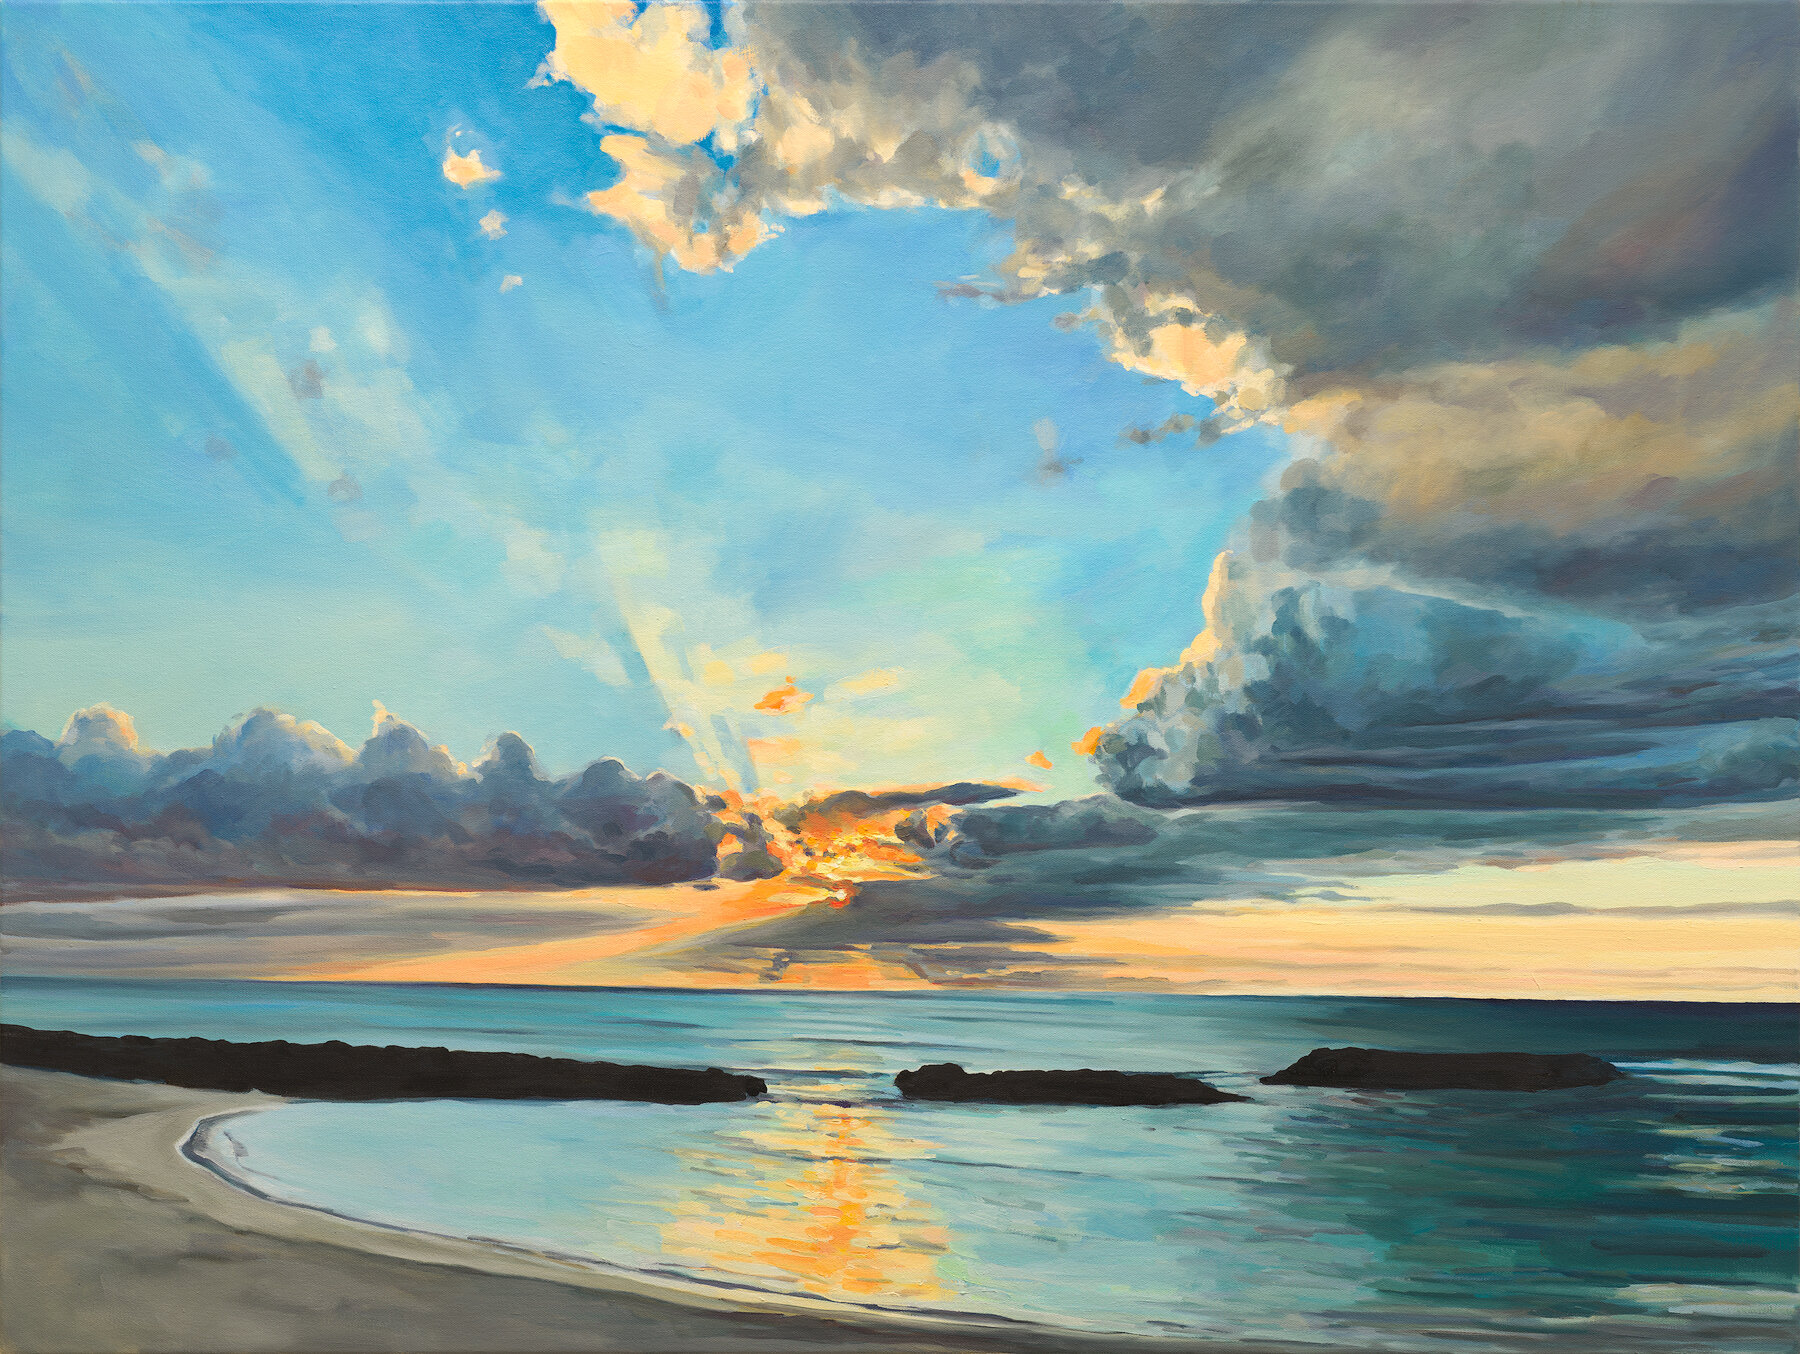 """'Breaking Through'  2019  48"""" x 36""""  water soluble oil on canvas  available"""